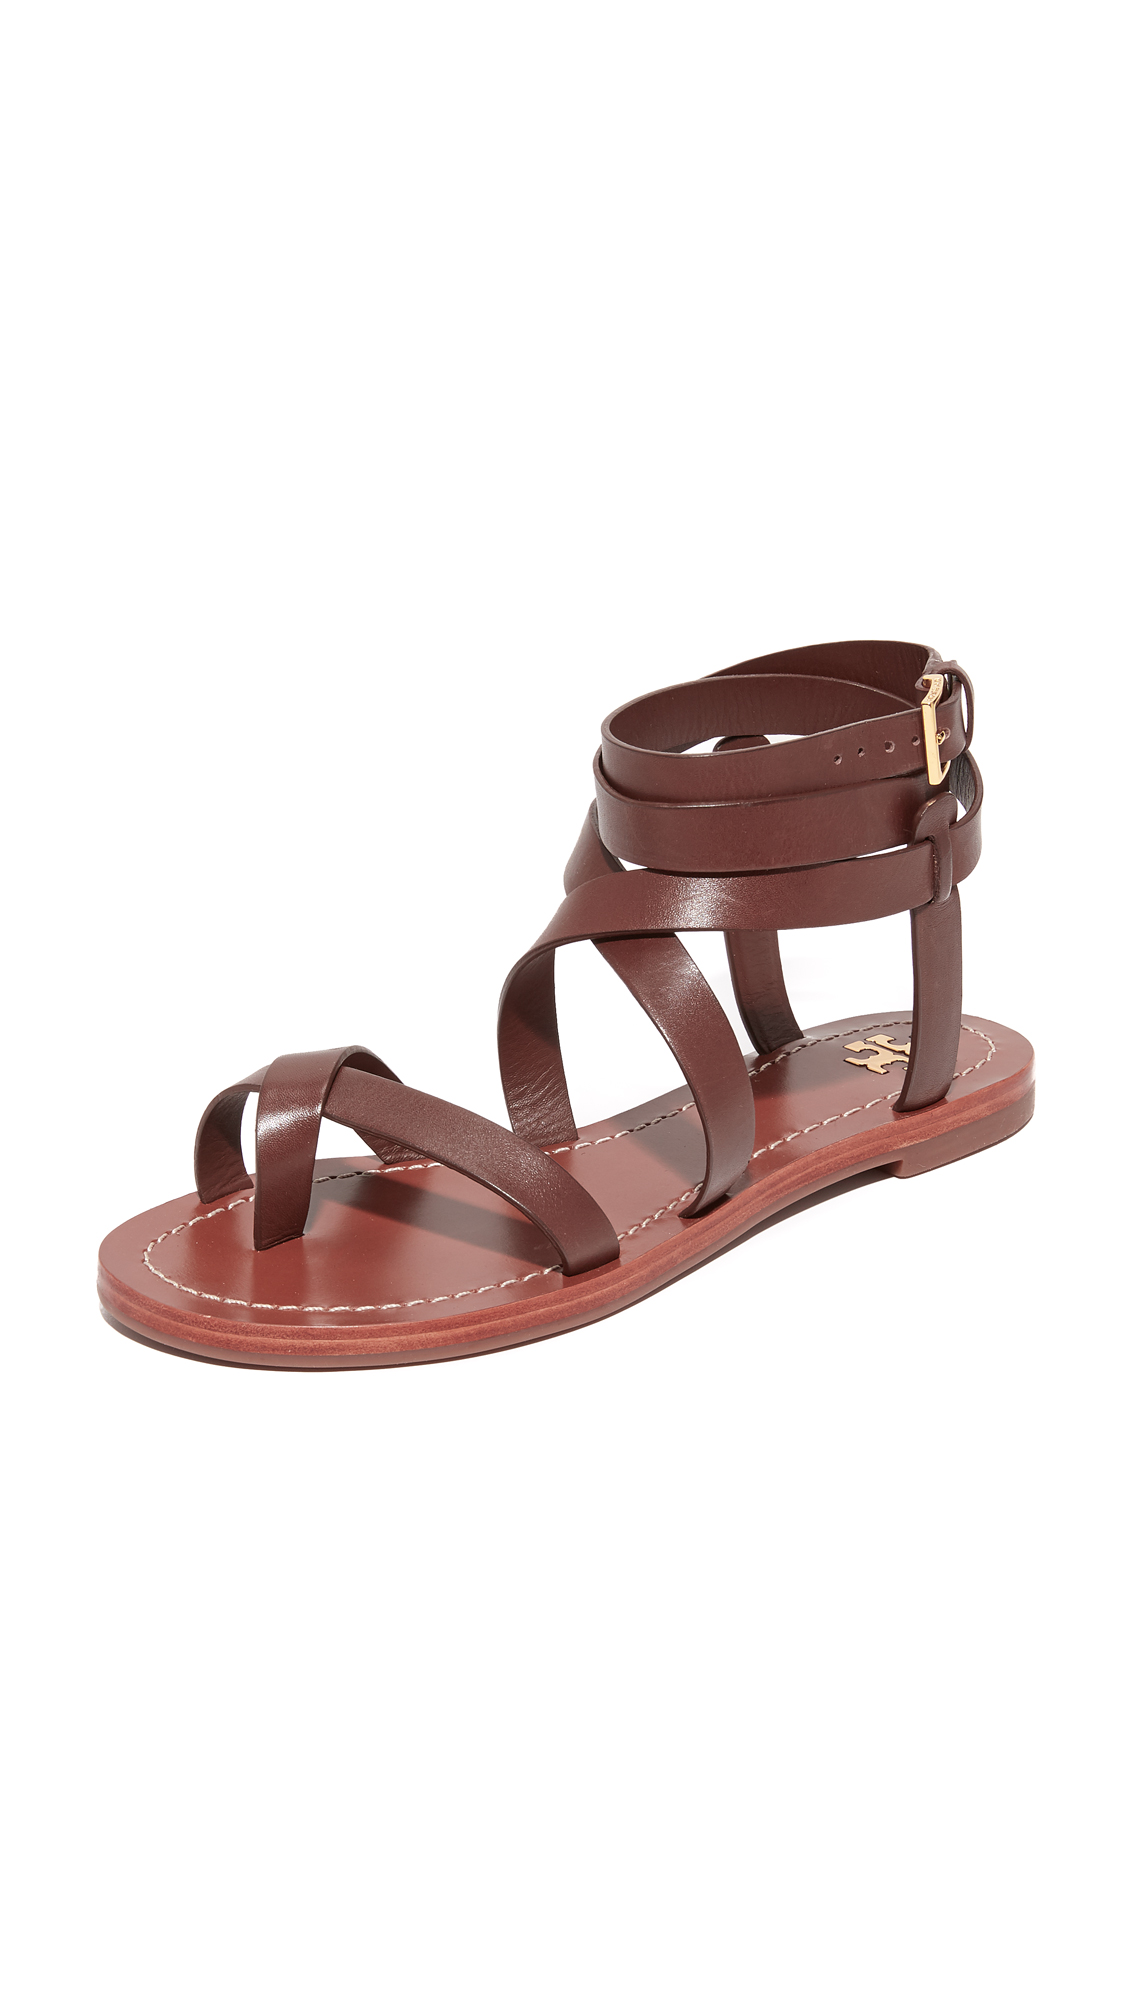 f1bd05a42366 Tory Burch Patos Sandals In Americano